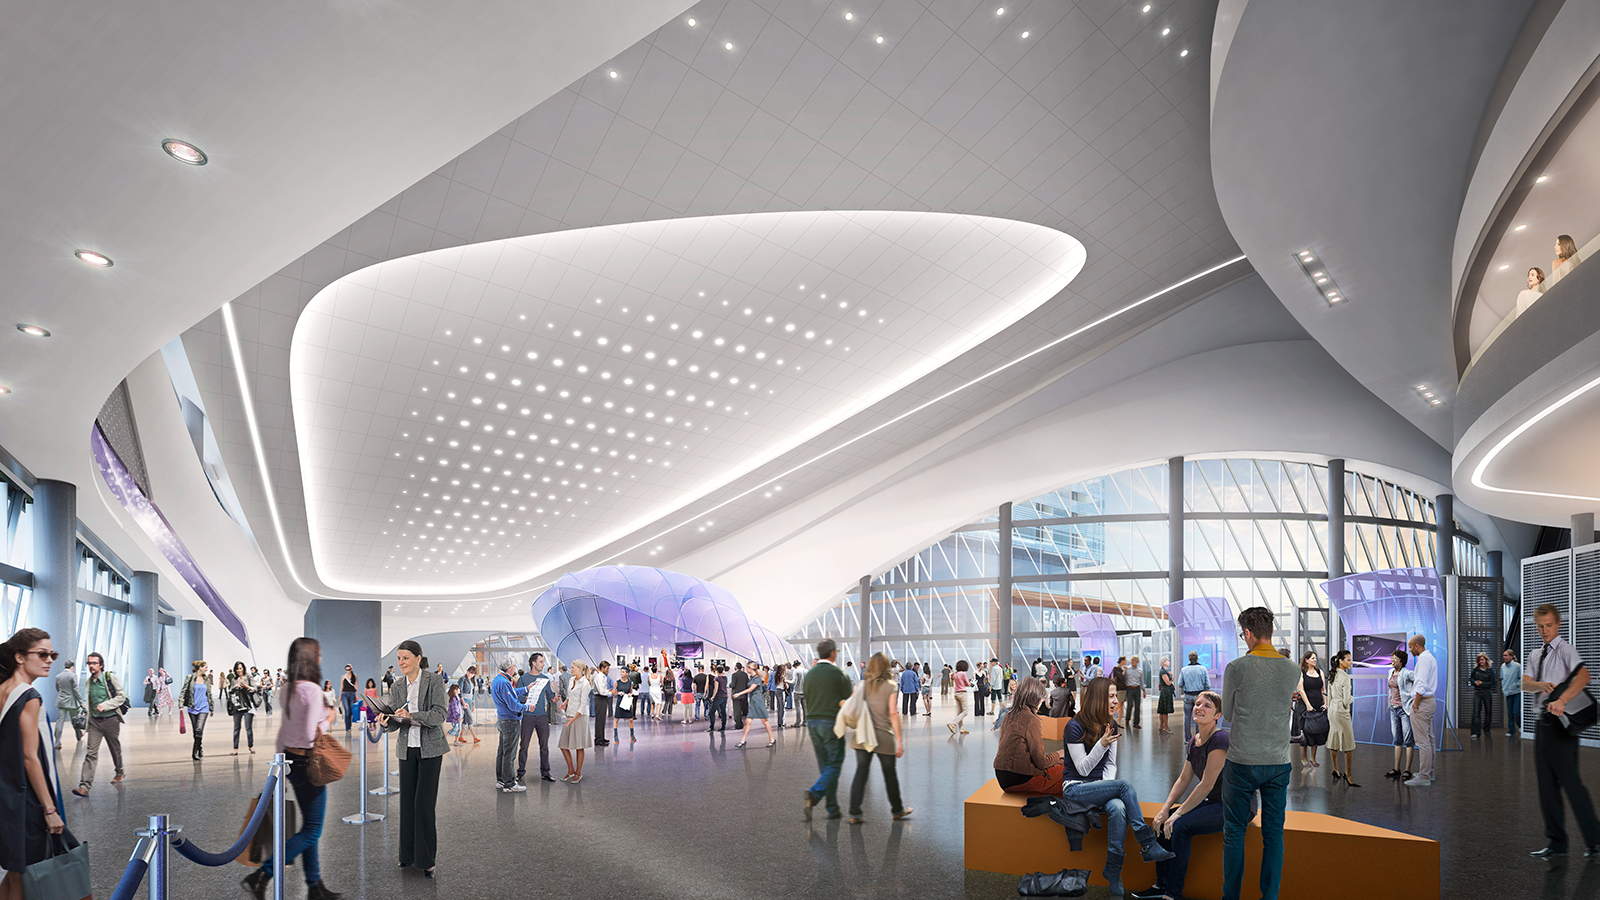 Ford Credit Canada Jobs Edmonton: GALLERY: New Rogers Place Renderings